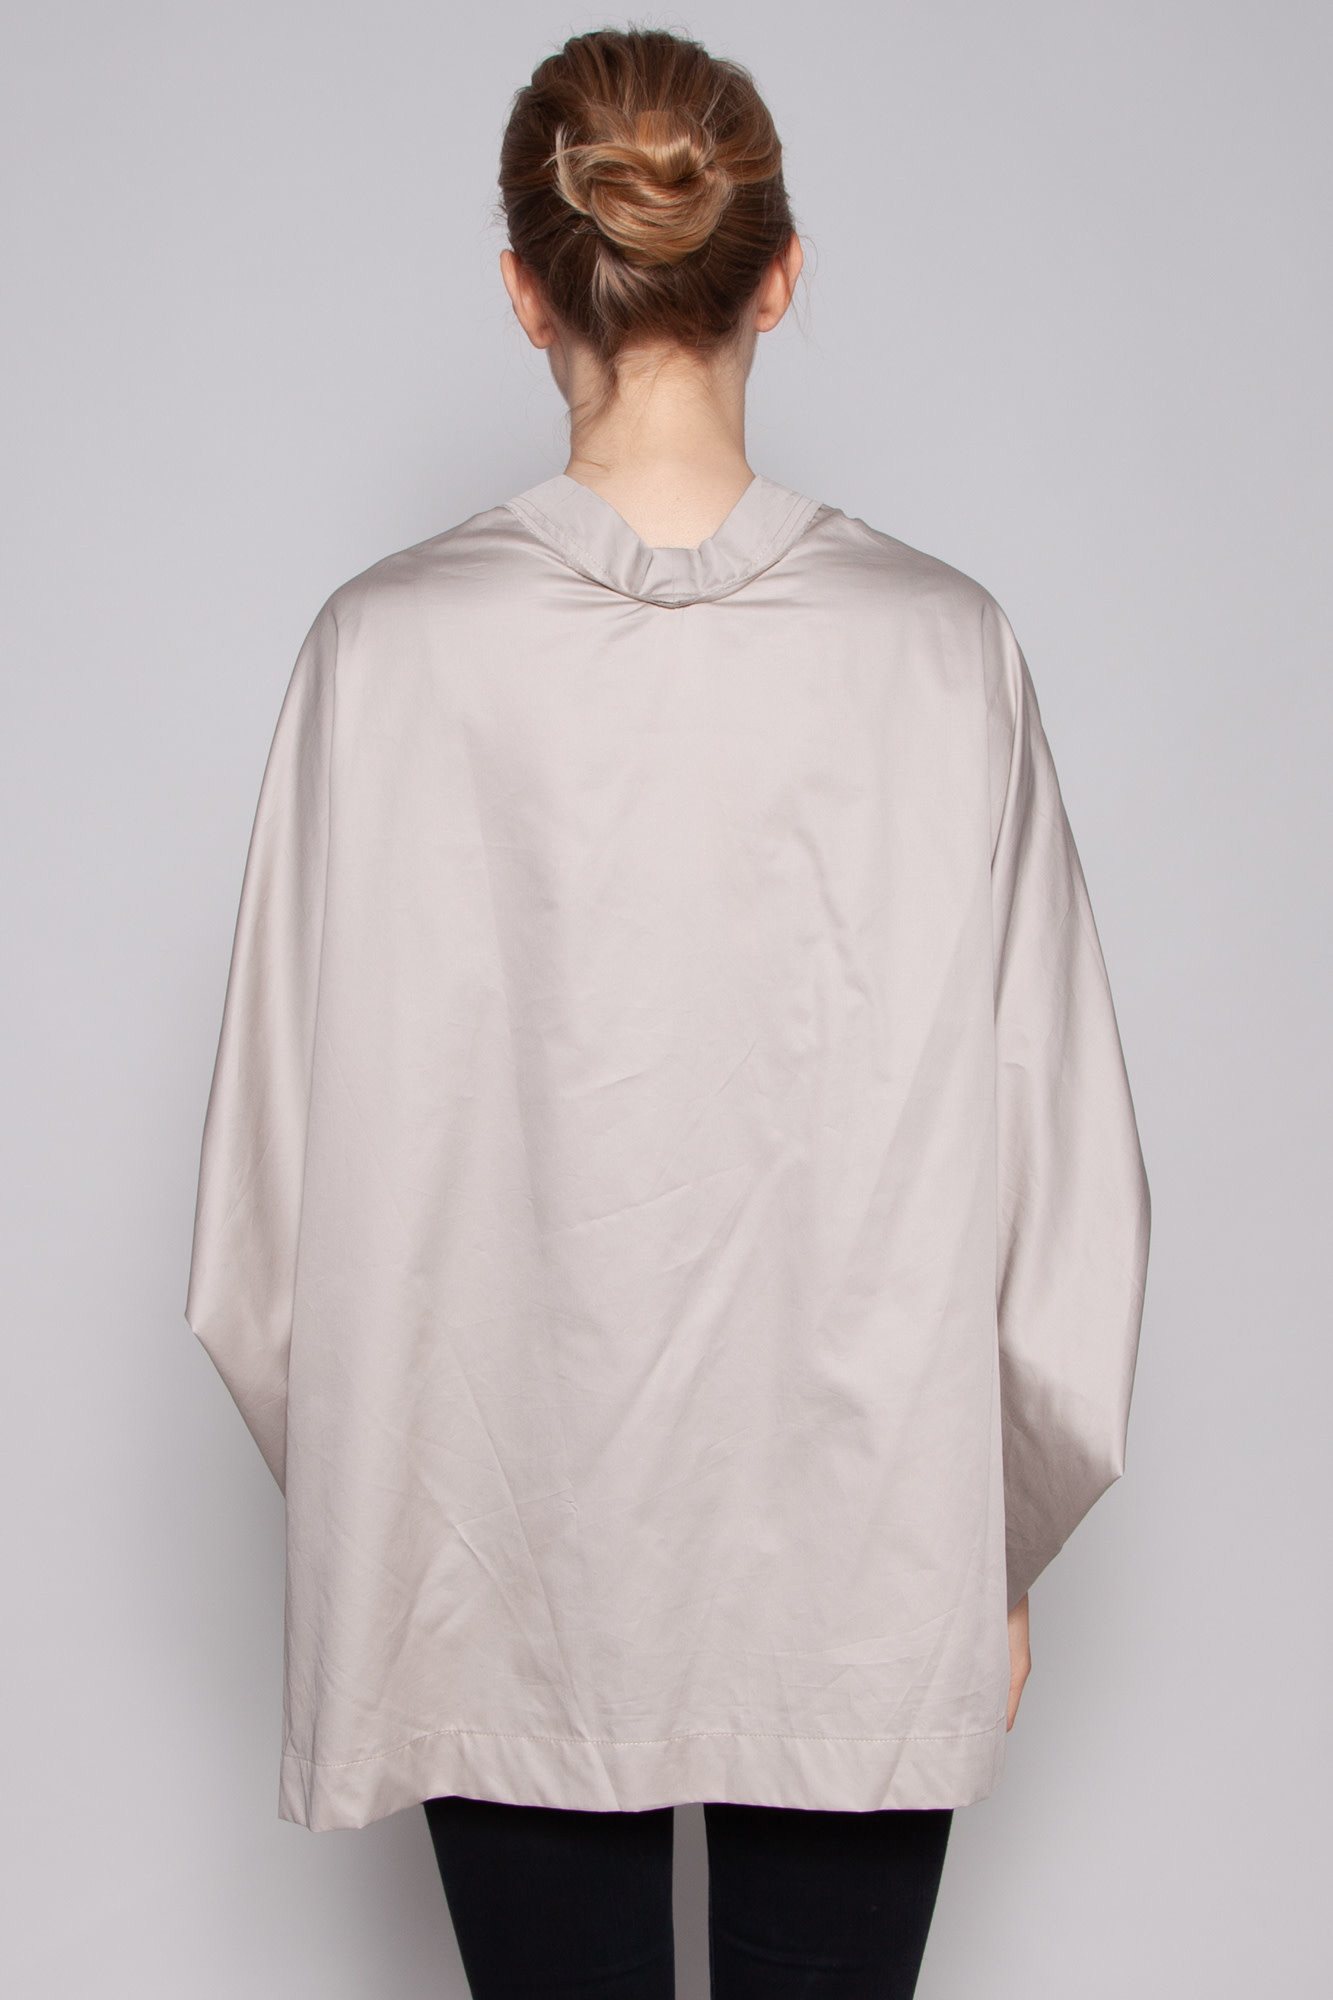 Complexegeometries BEIGE COTTON TUNIC TOP WITH BATWING SLEEVES - NEW